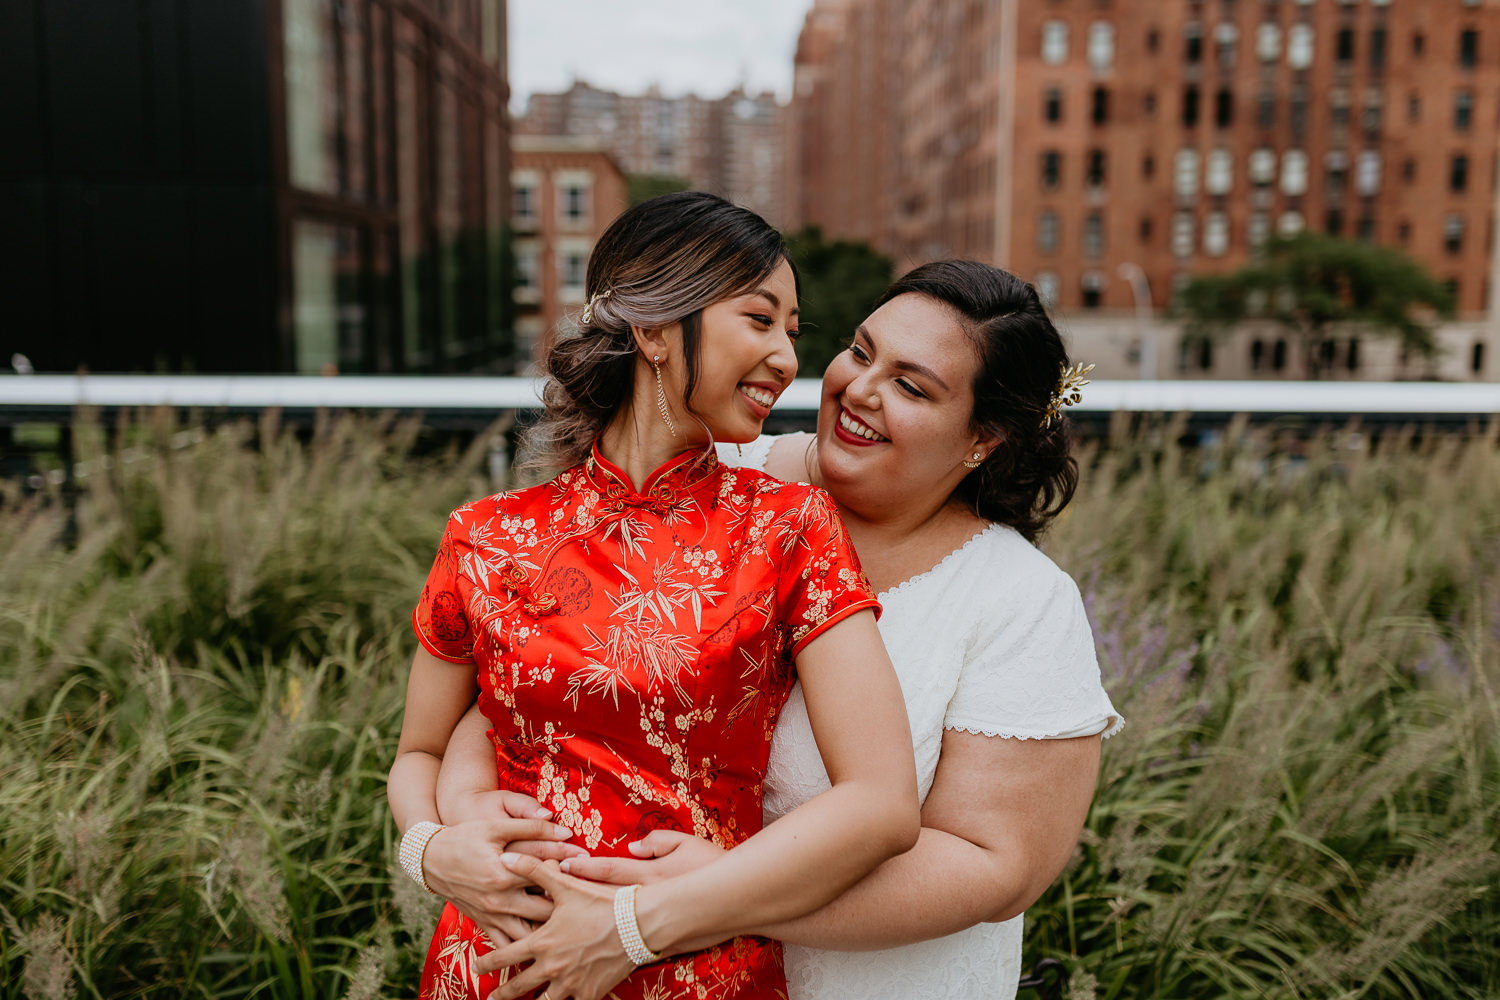 newlywed same sex brides hugging and smiling from behind with Chelsea nyc views